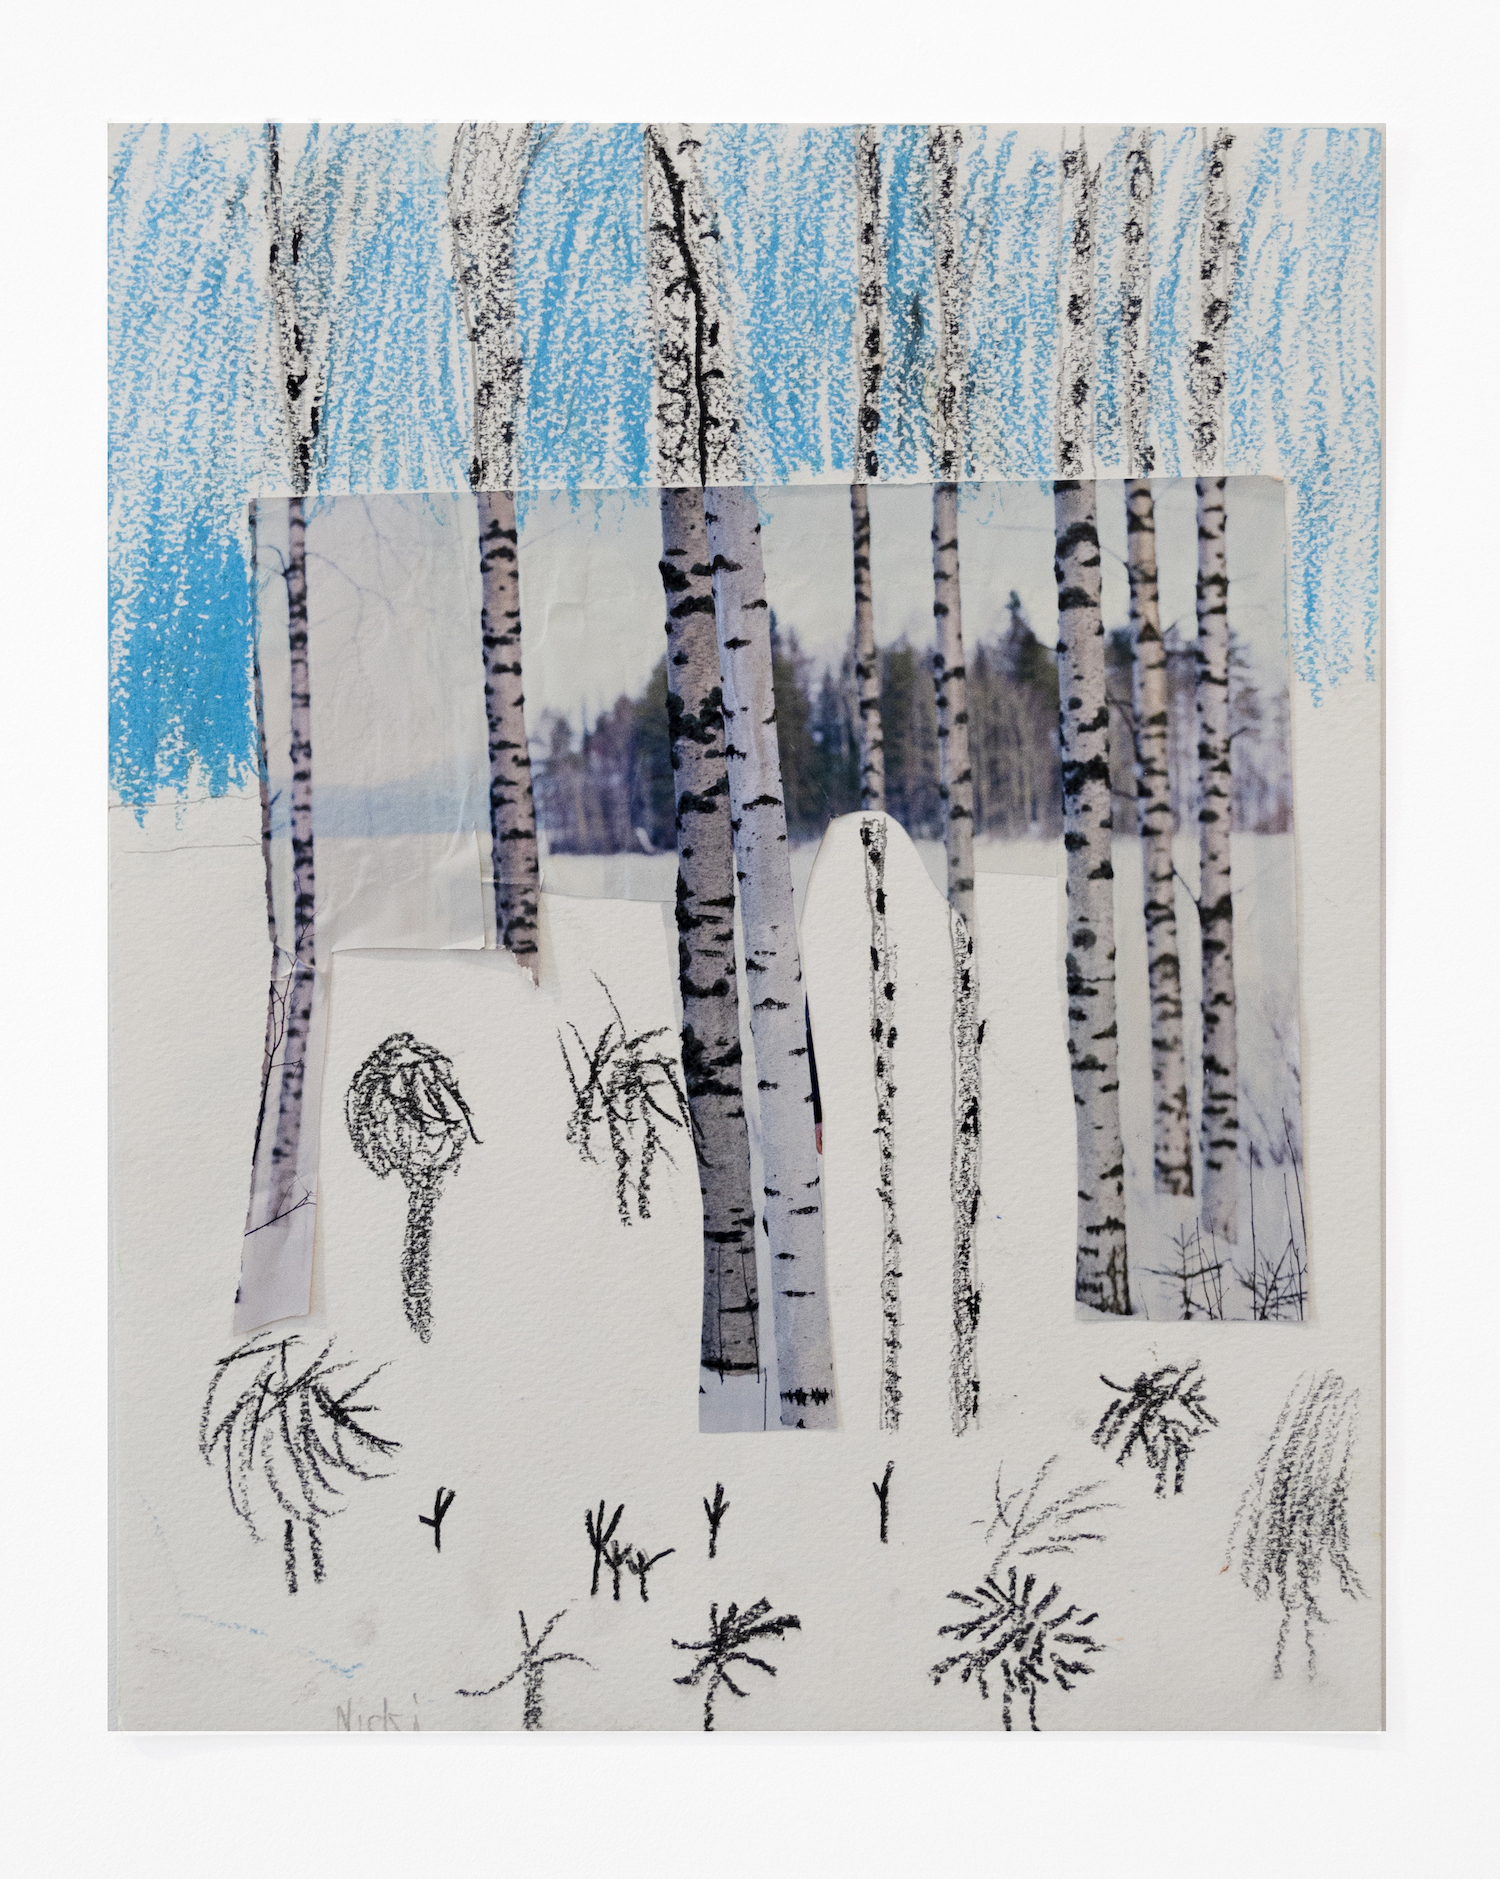 Nicola Remmel ,   Birch Trees , 2018, Collage and watercolor on paper, 14 x 11 inches (35.56 x 27.94 cm)